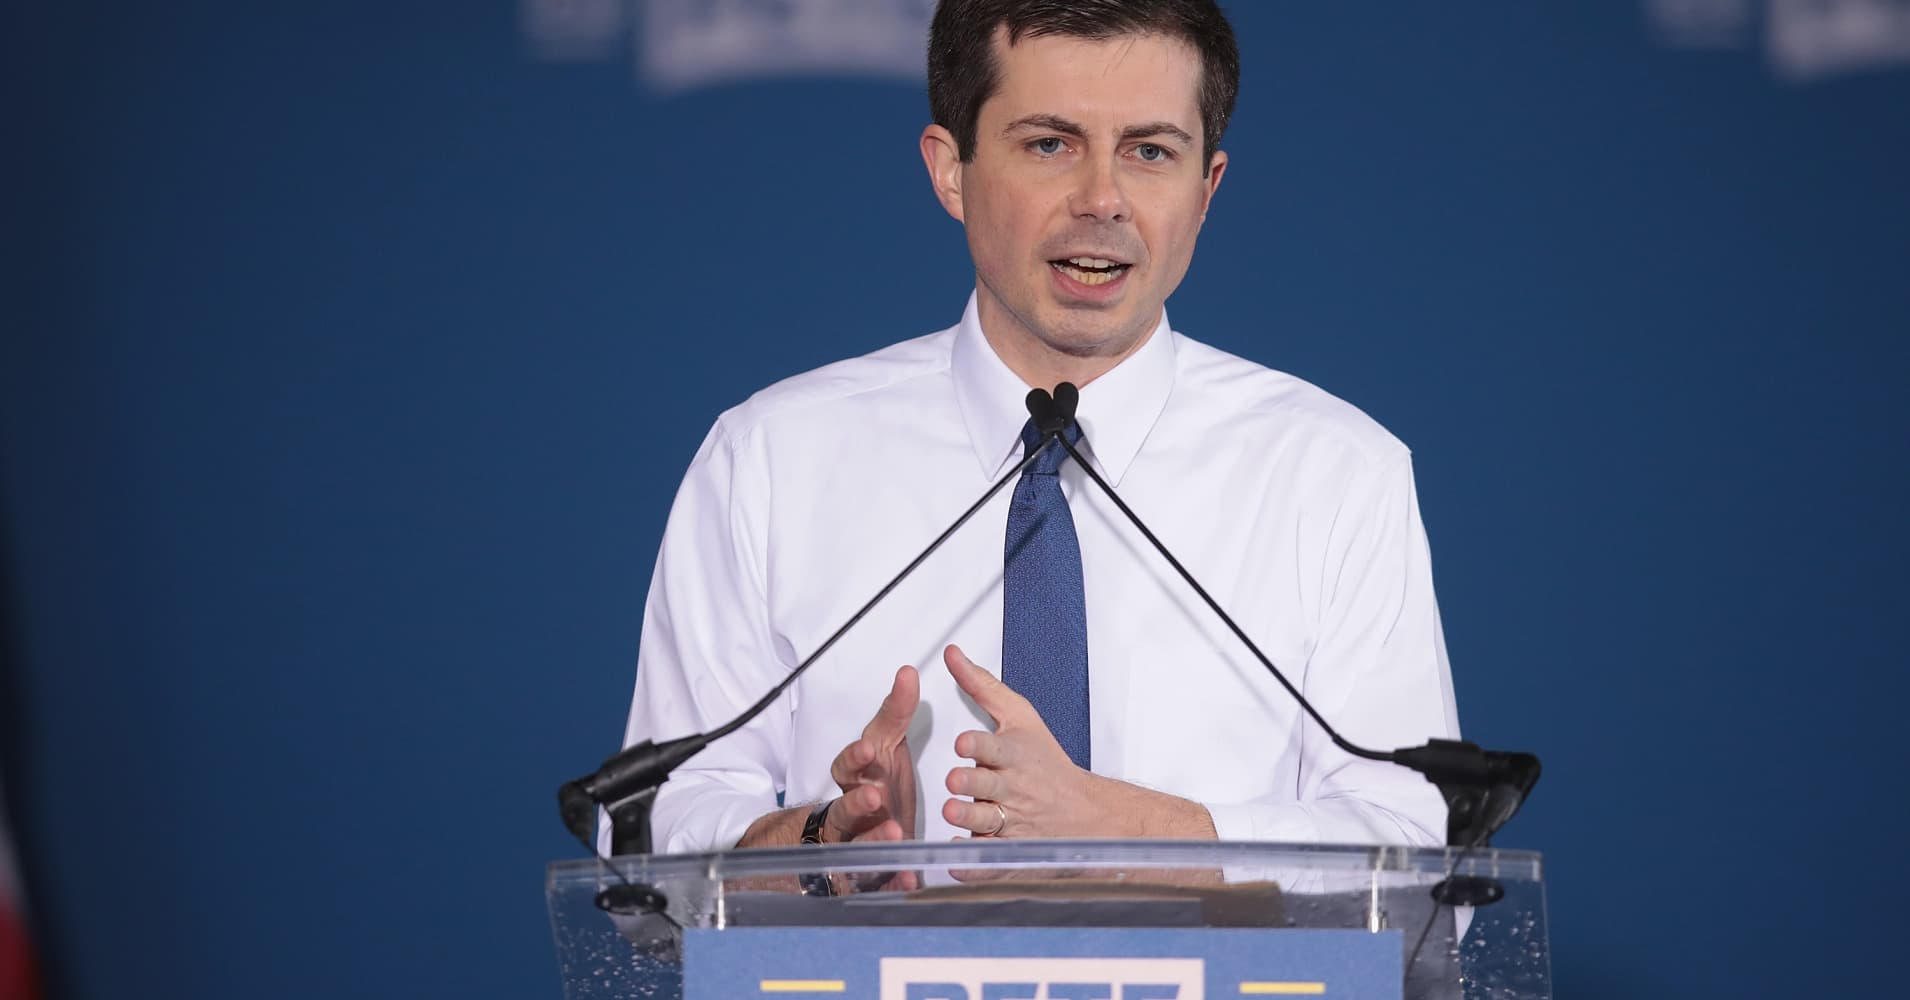 Rising star Pete Buttigieg enlists Obama and Clinton fundraisers for 2020 presidential run